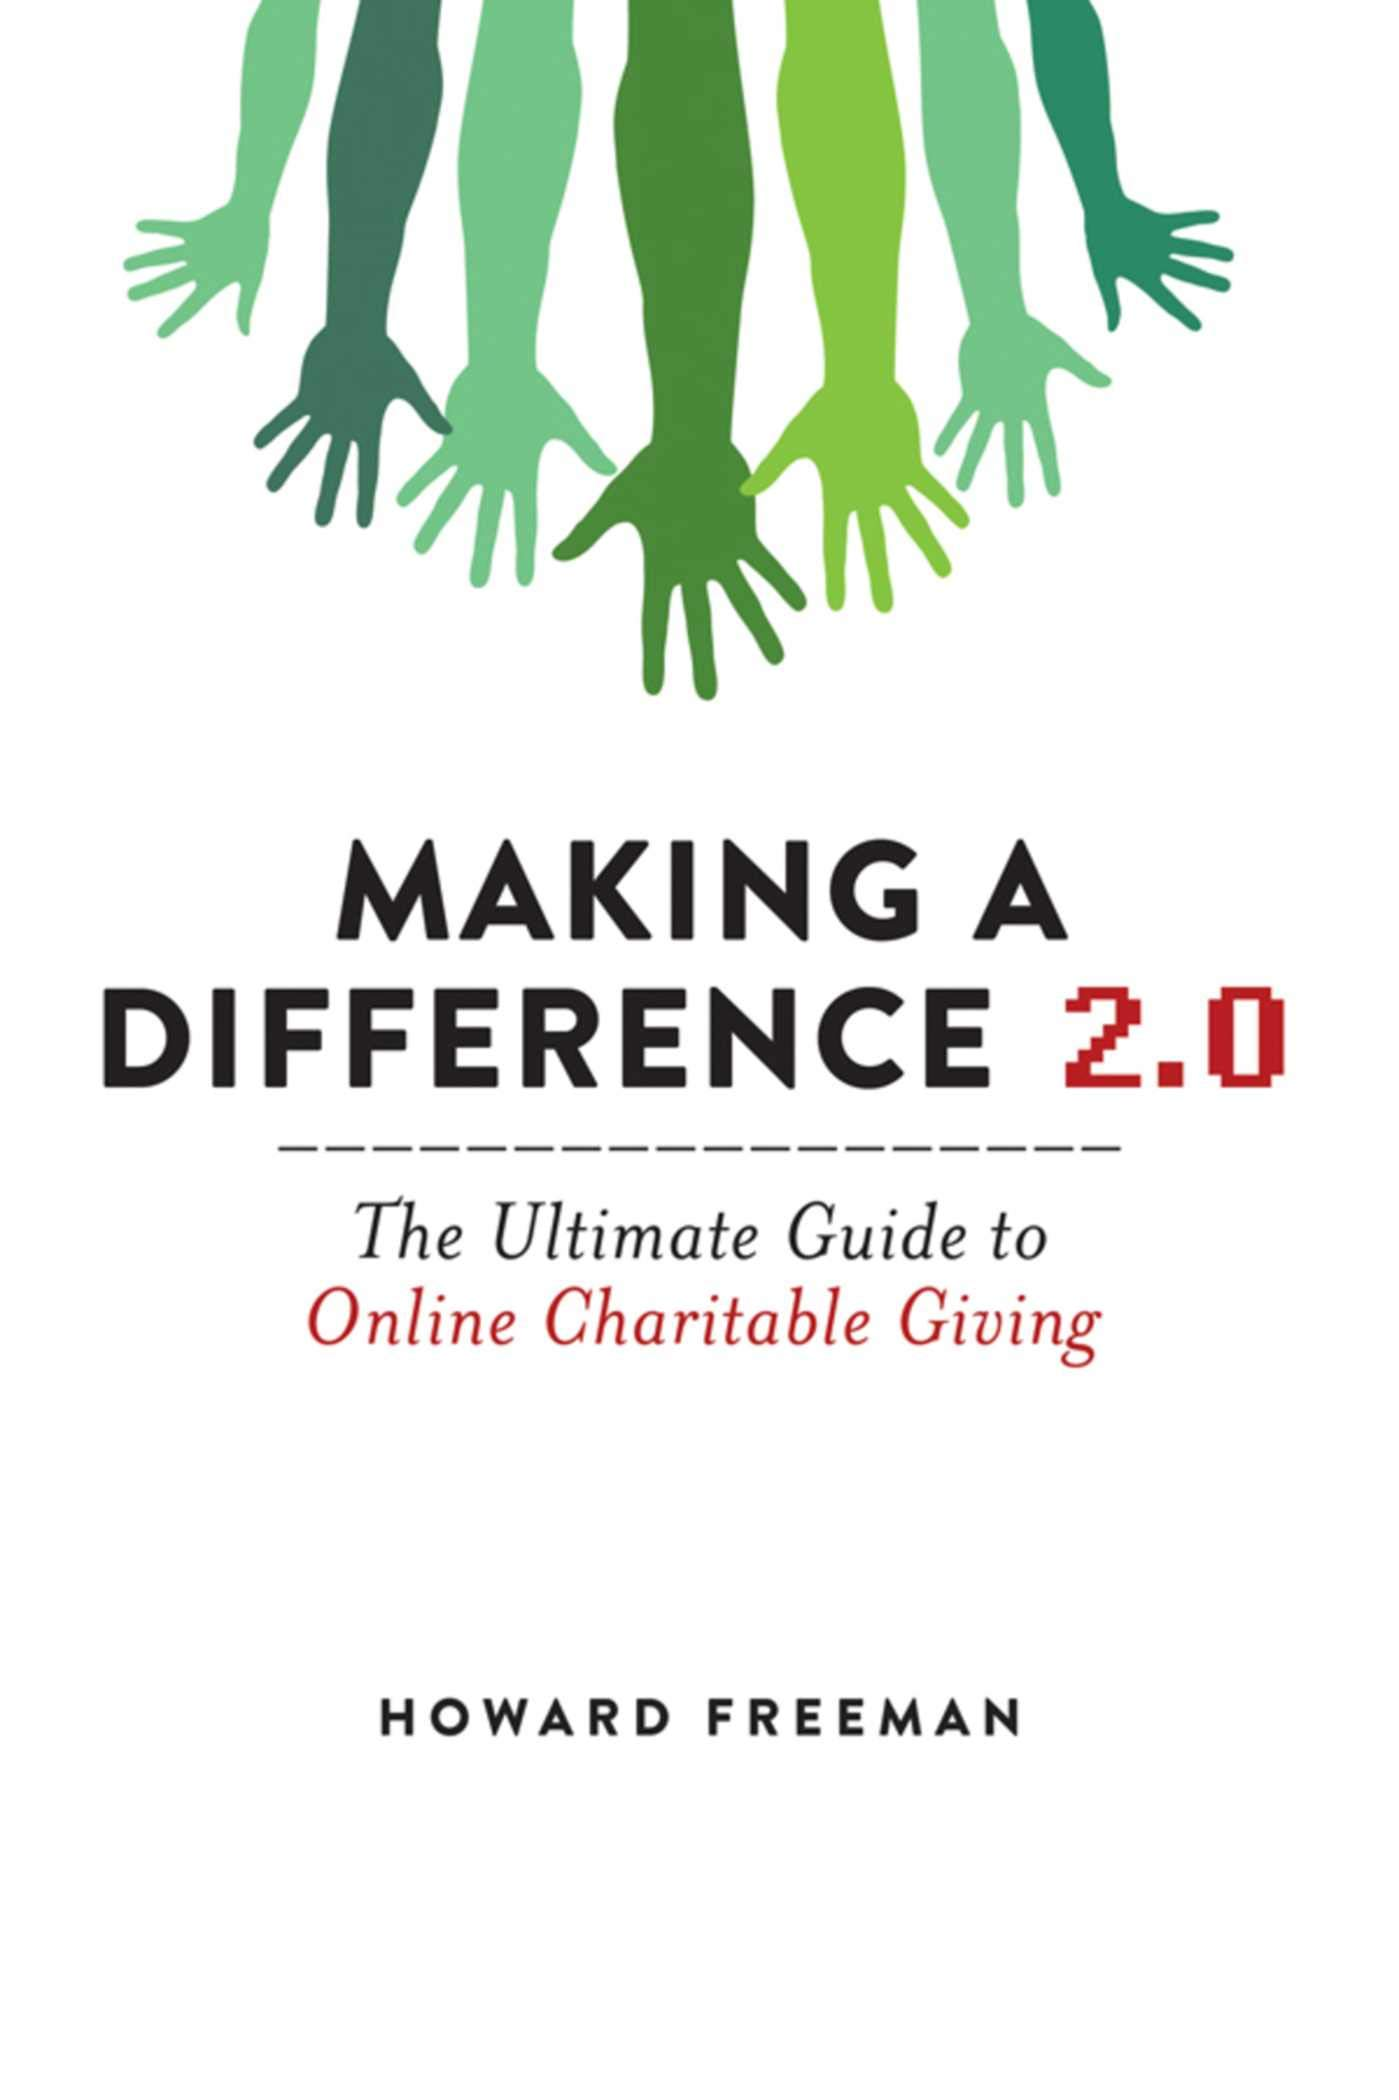 Image OfMaking A Difference 2.0: The Ultimate Guide To Online Charitable Giving